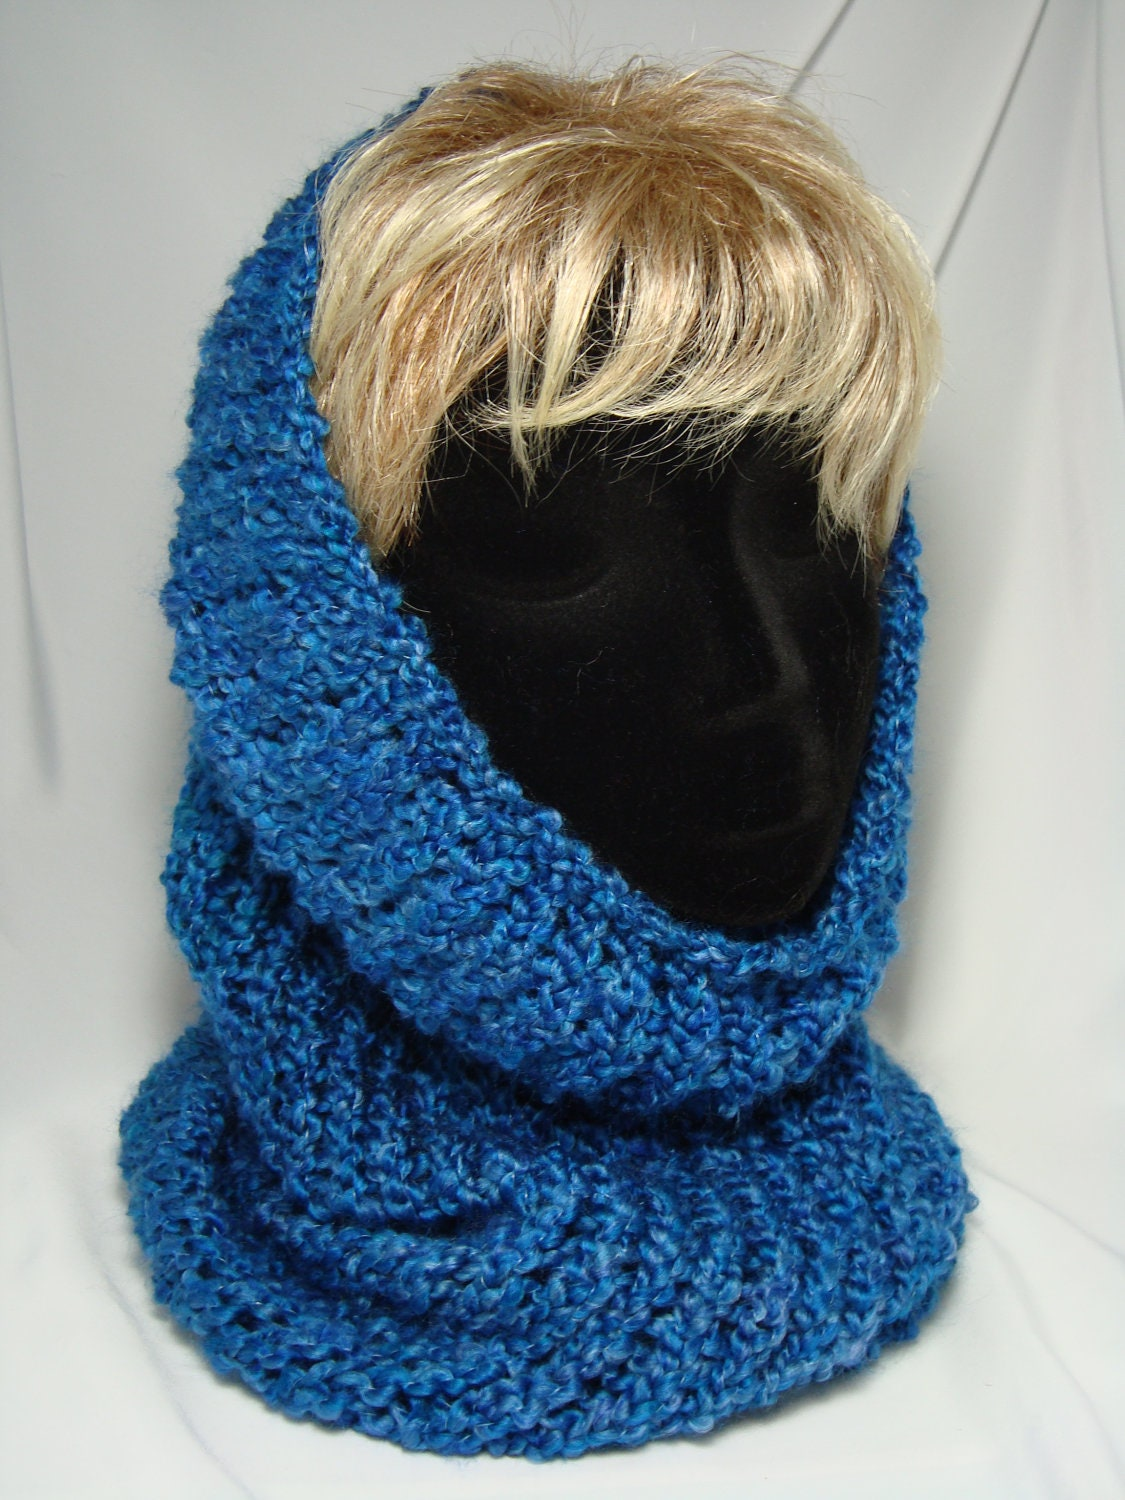 Loom Knitted Hooded Cowl by 3BlueDogsAndMe on Etsy